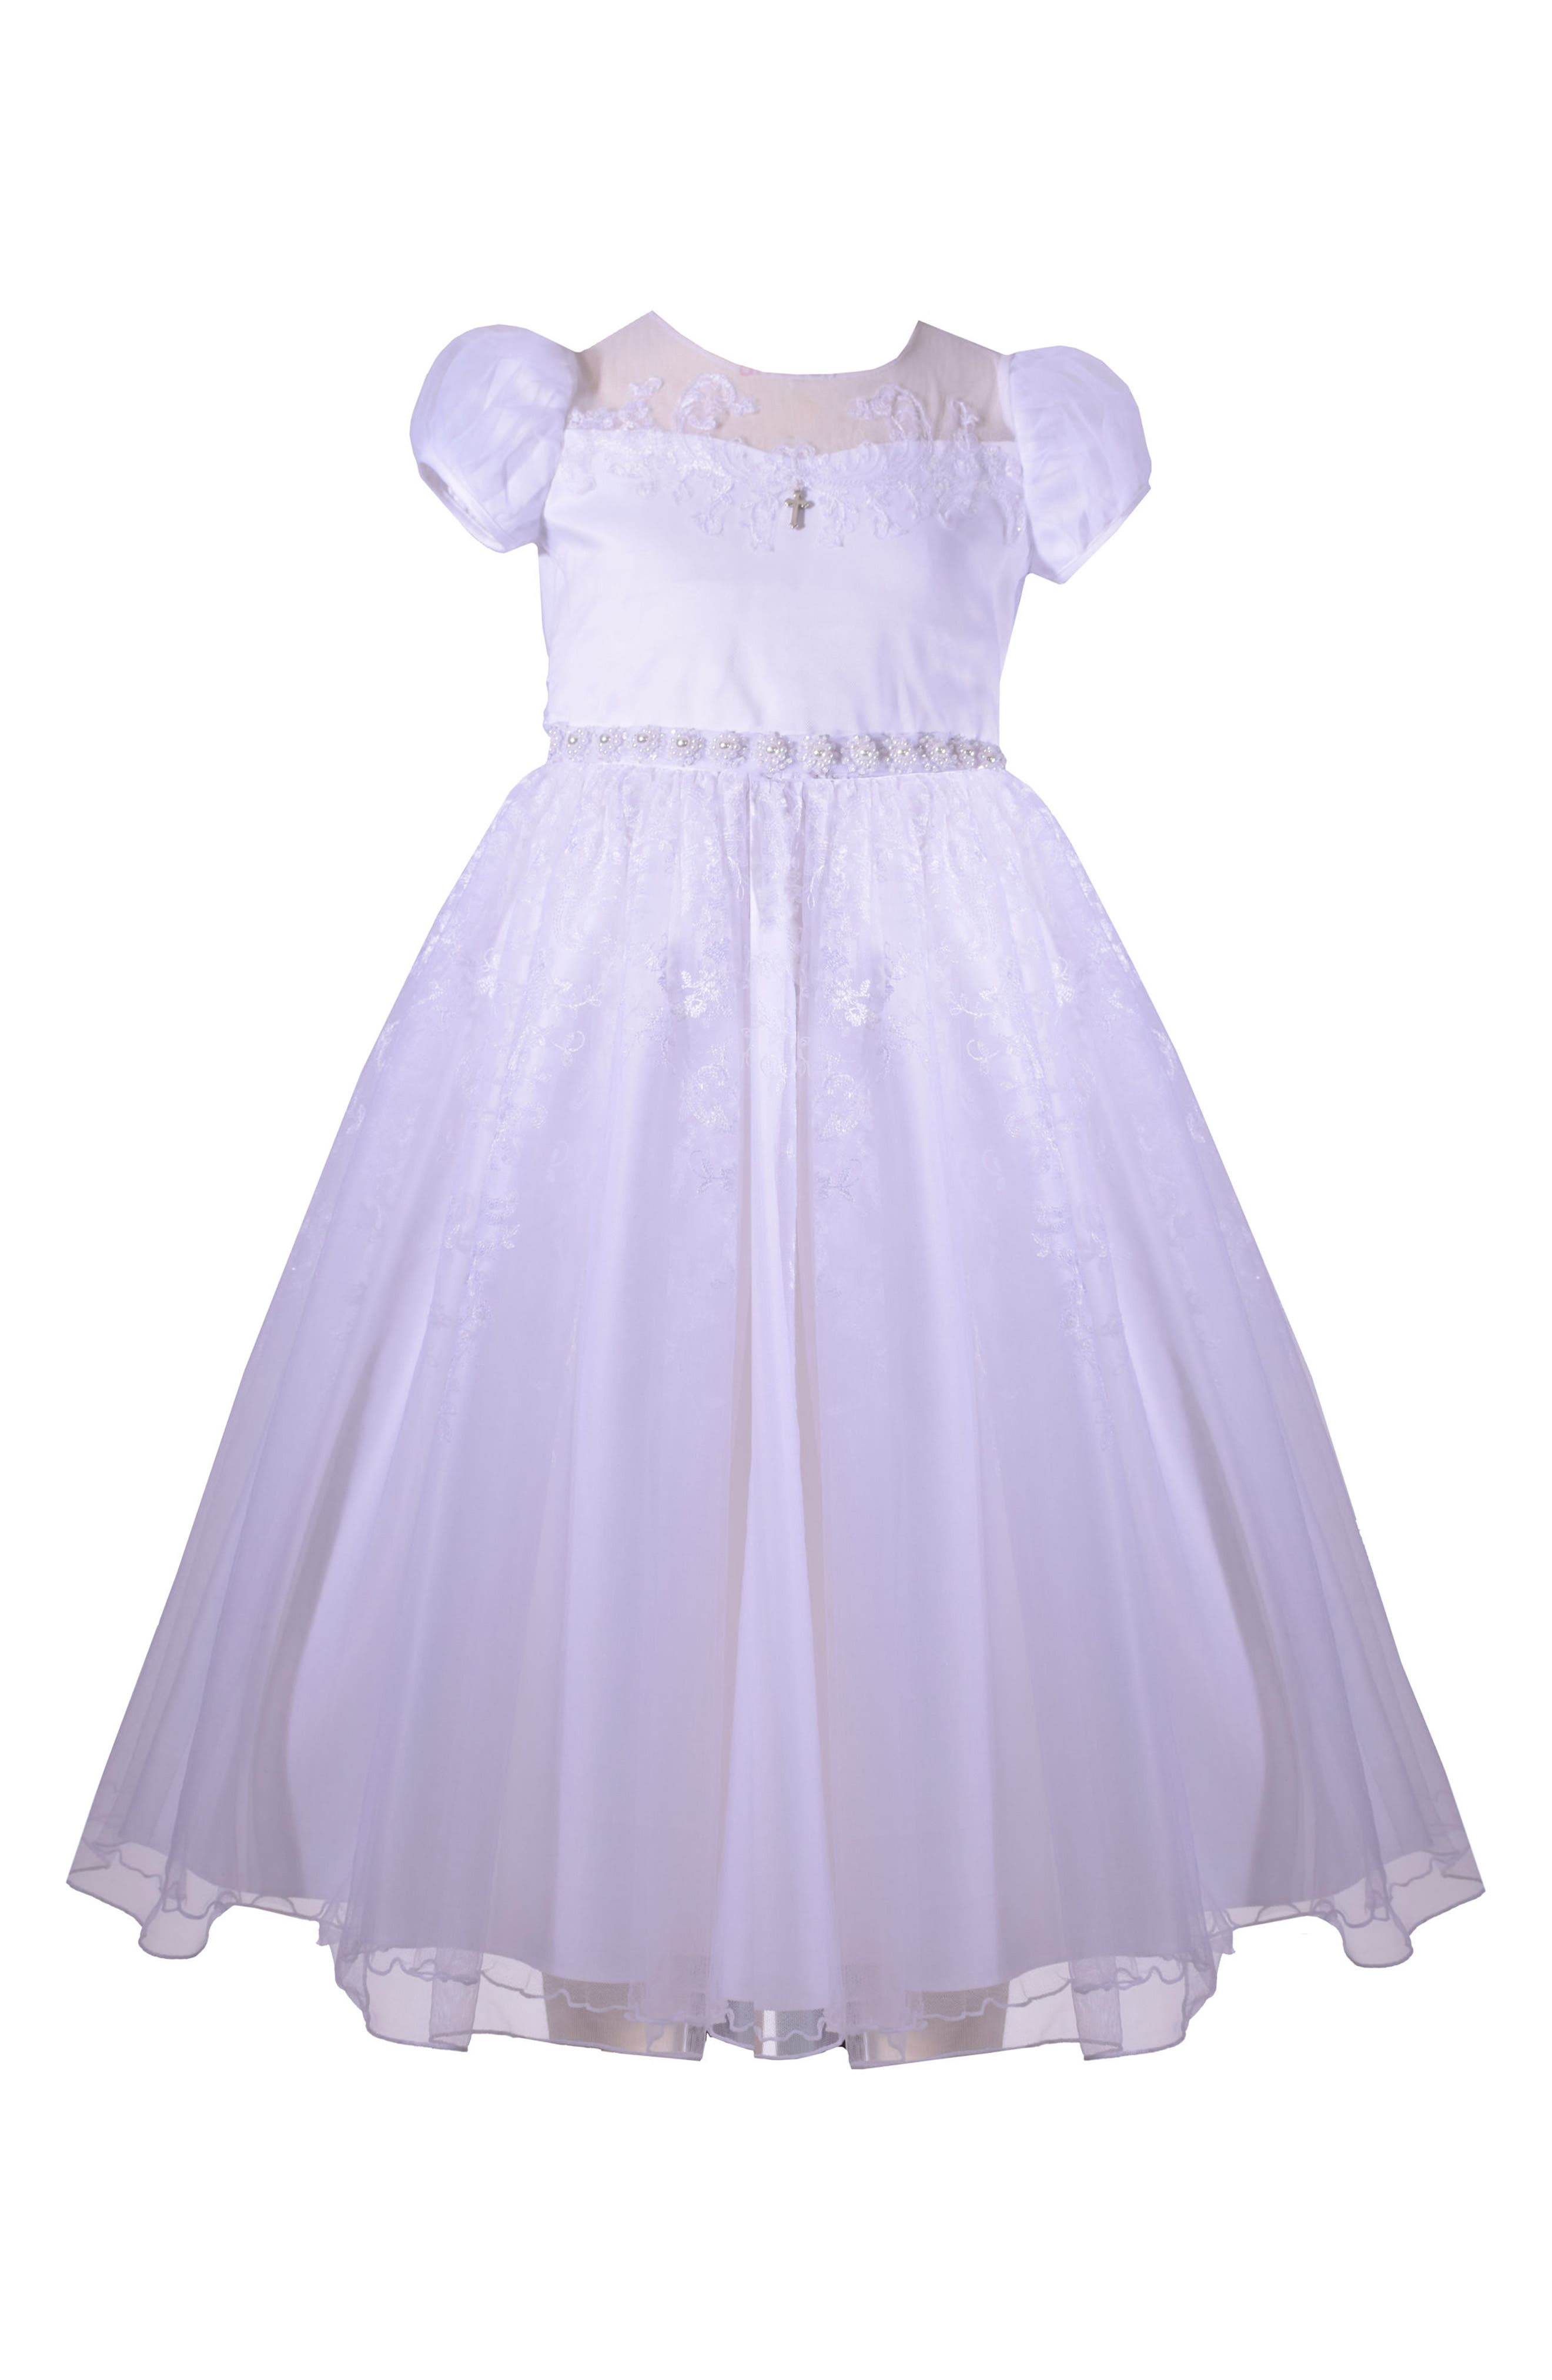 Alternate Image 1 Selected - Iris & Ivy Puff Sleeve First Communion Dress (Little Girls & Big Girls)